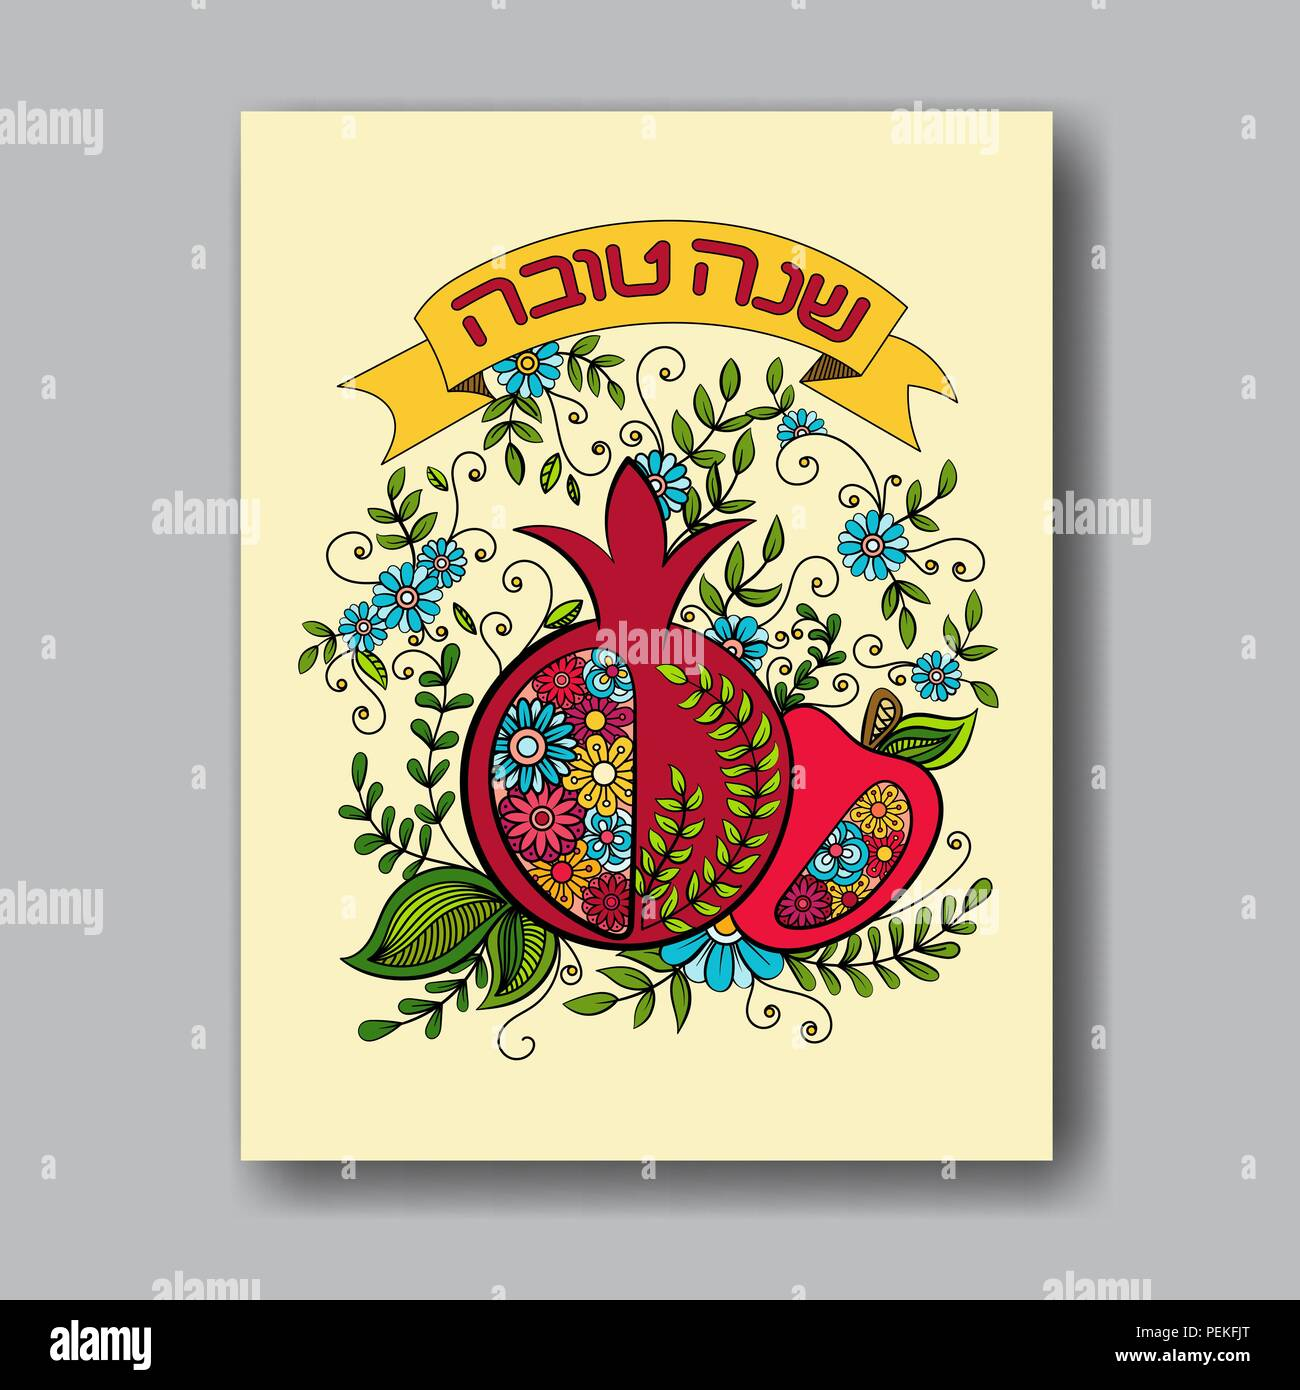 Rosh hashanah jewish new year greeting card template with apple rosh hashanah jewish new year greeting card template with apple and pomegranate hebrew text happy new year shanah tovav hand drawn vector illustration m4hsunfo